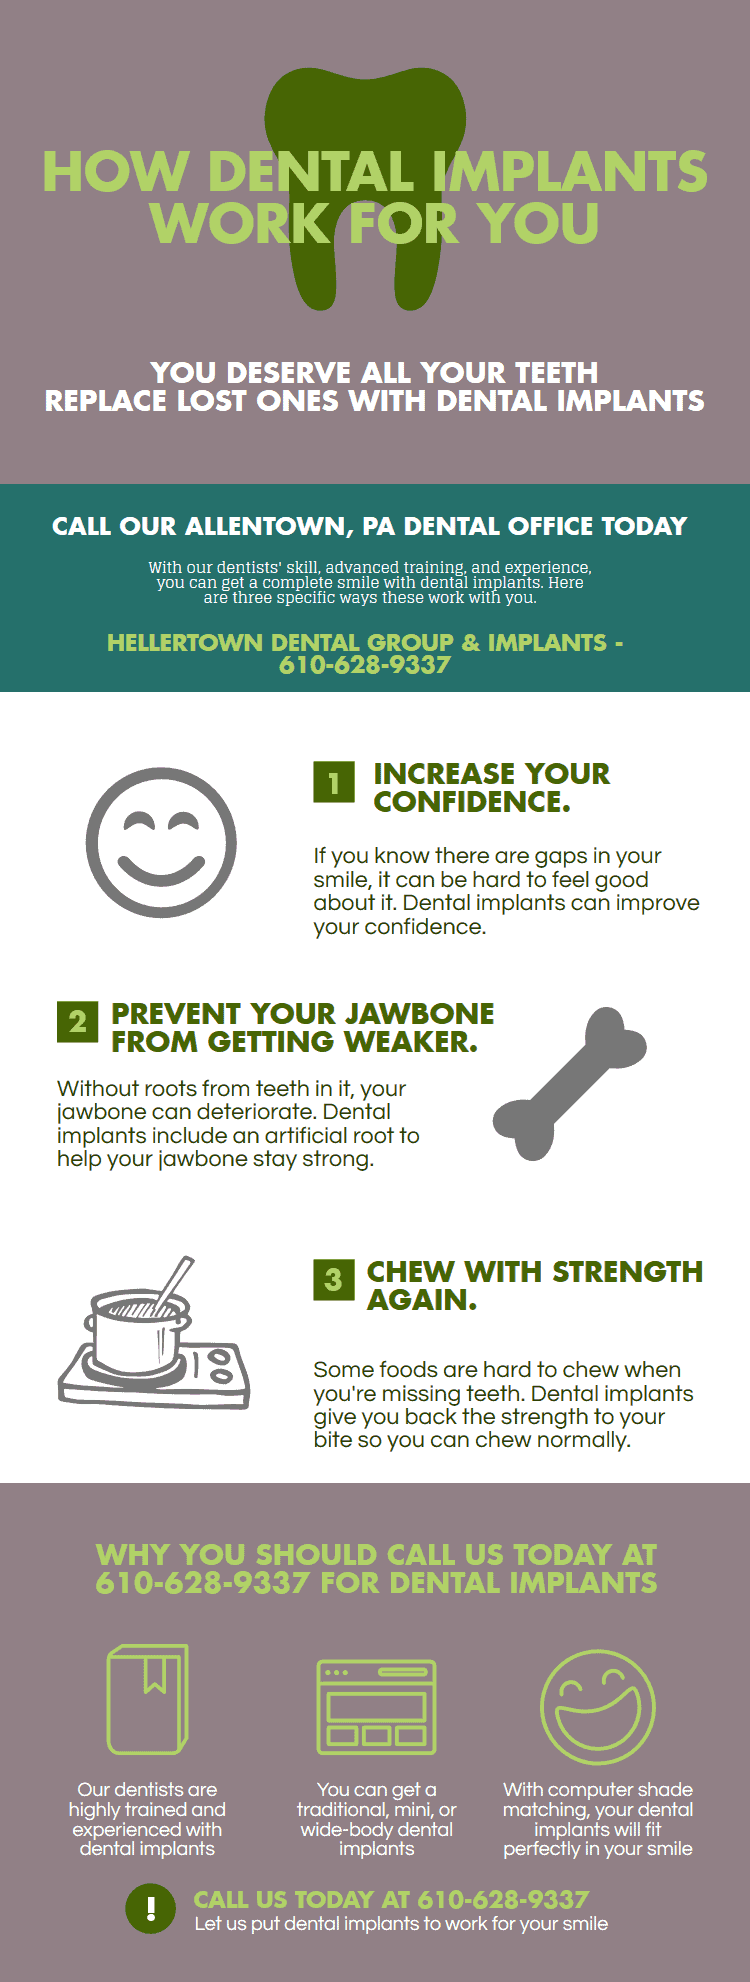 3 Reasons Dental Implants Work For You